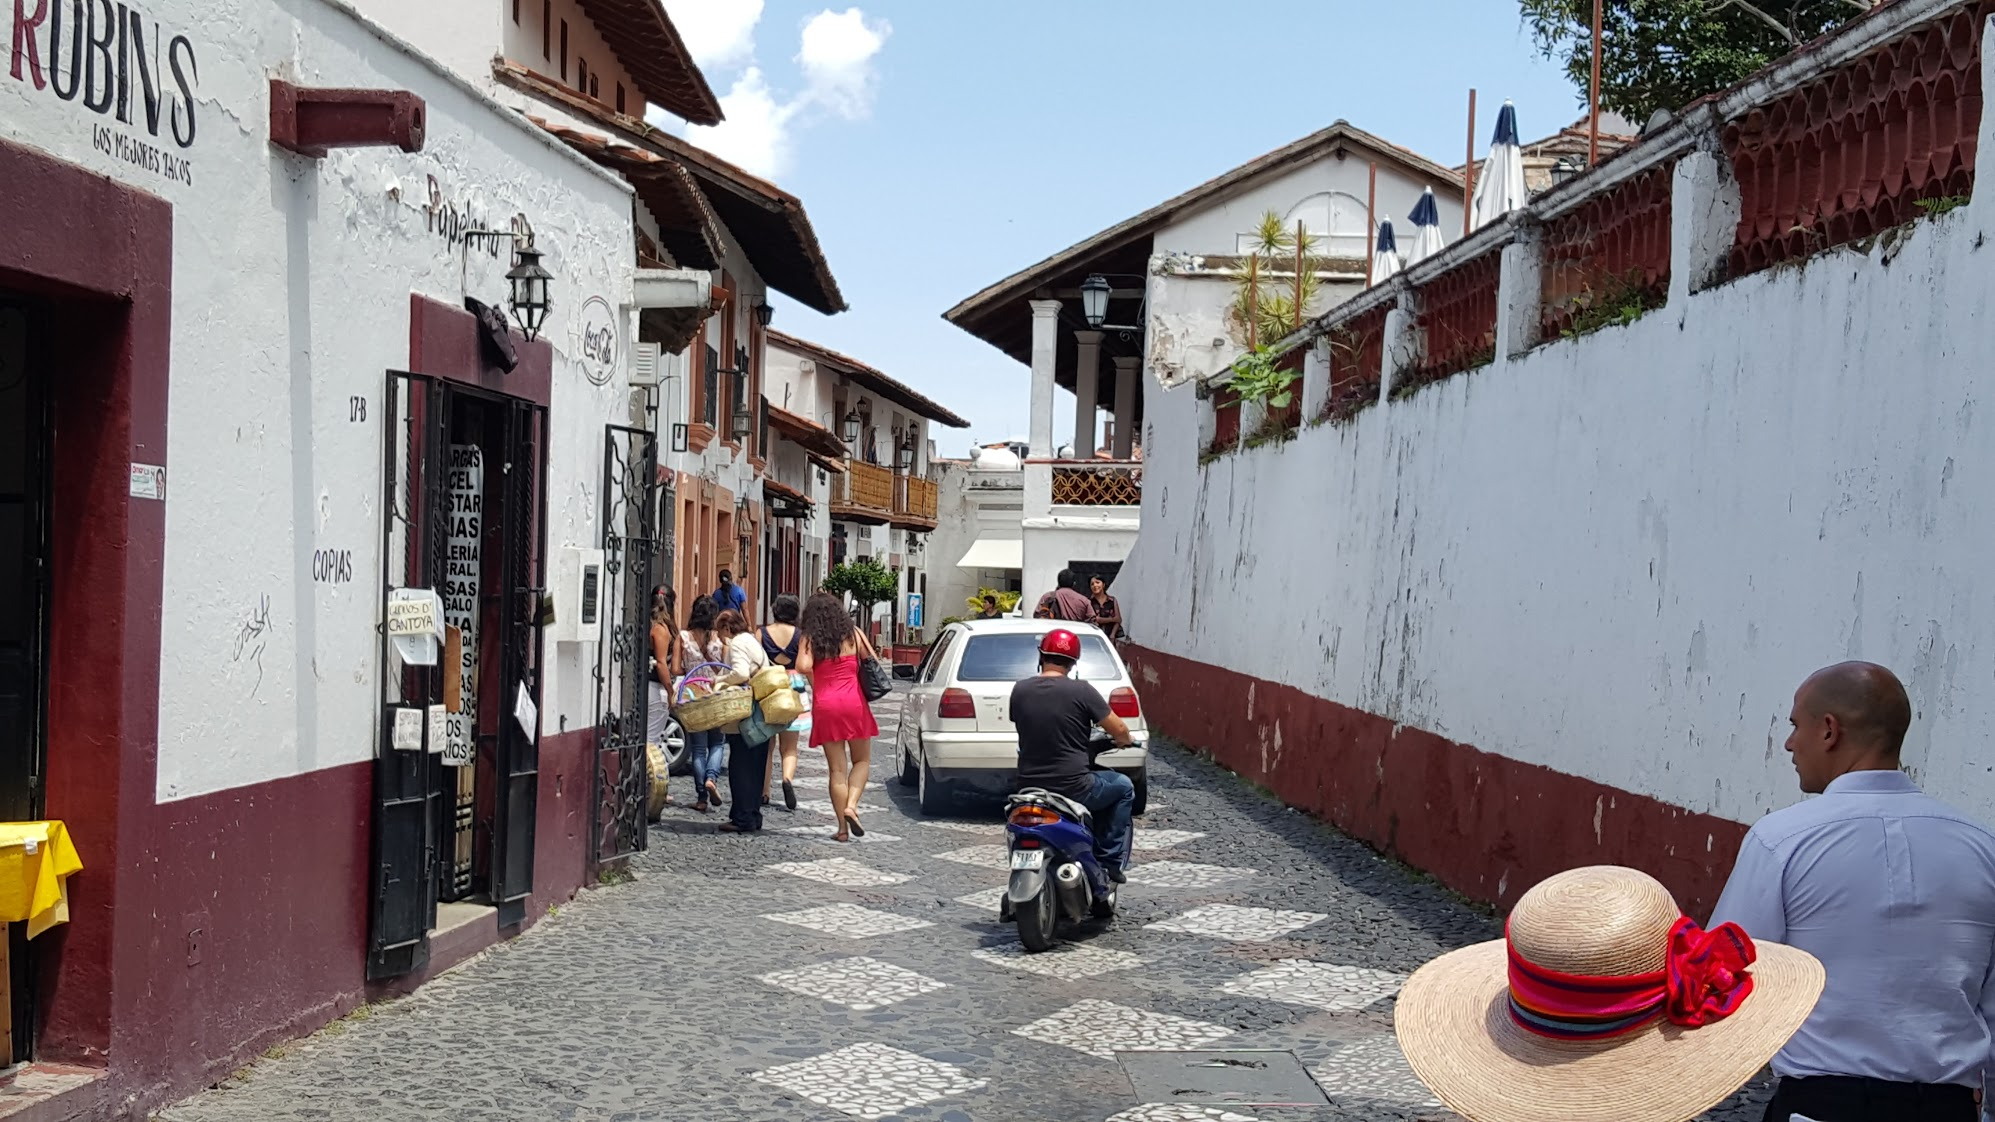 Back in Taxco again. I am looking forward to traveling more this year so I can get more reference photos!